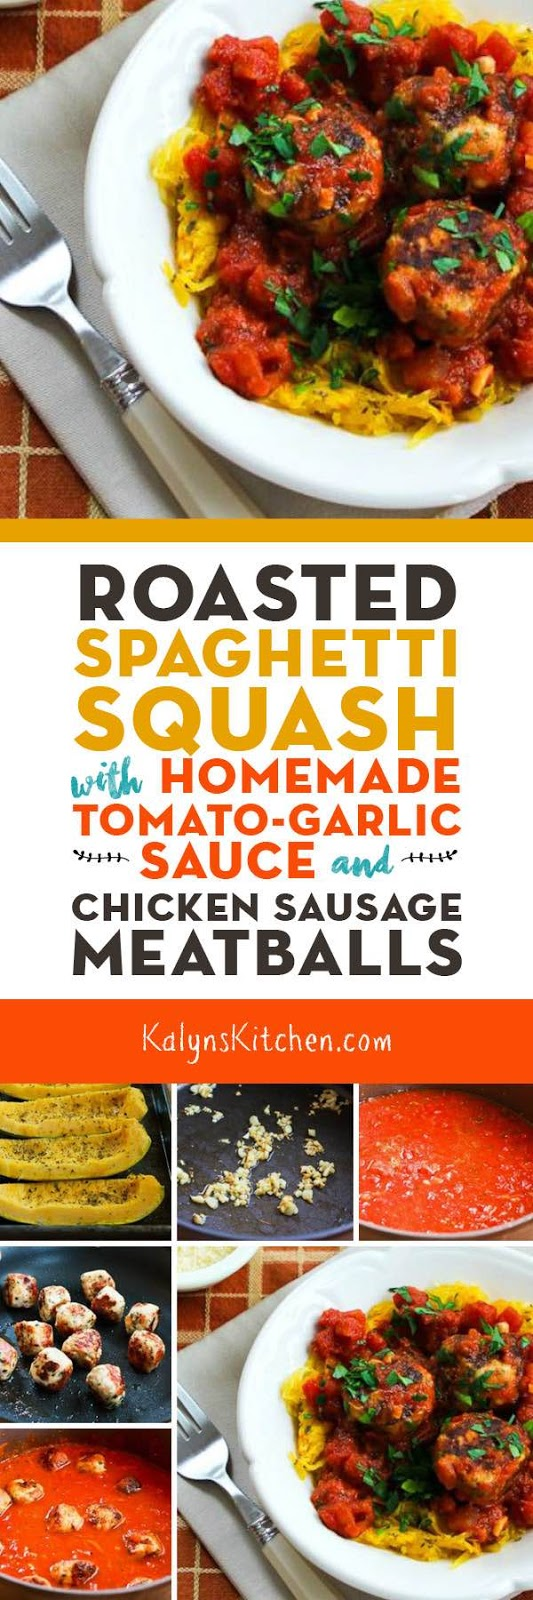 Roasted Spaghetti Squash with Homemade Tomato-Garlic Sauce and Chicken ...